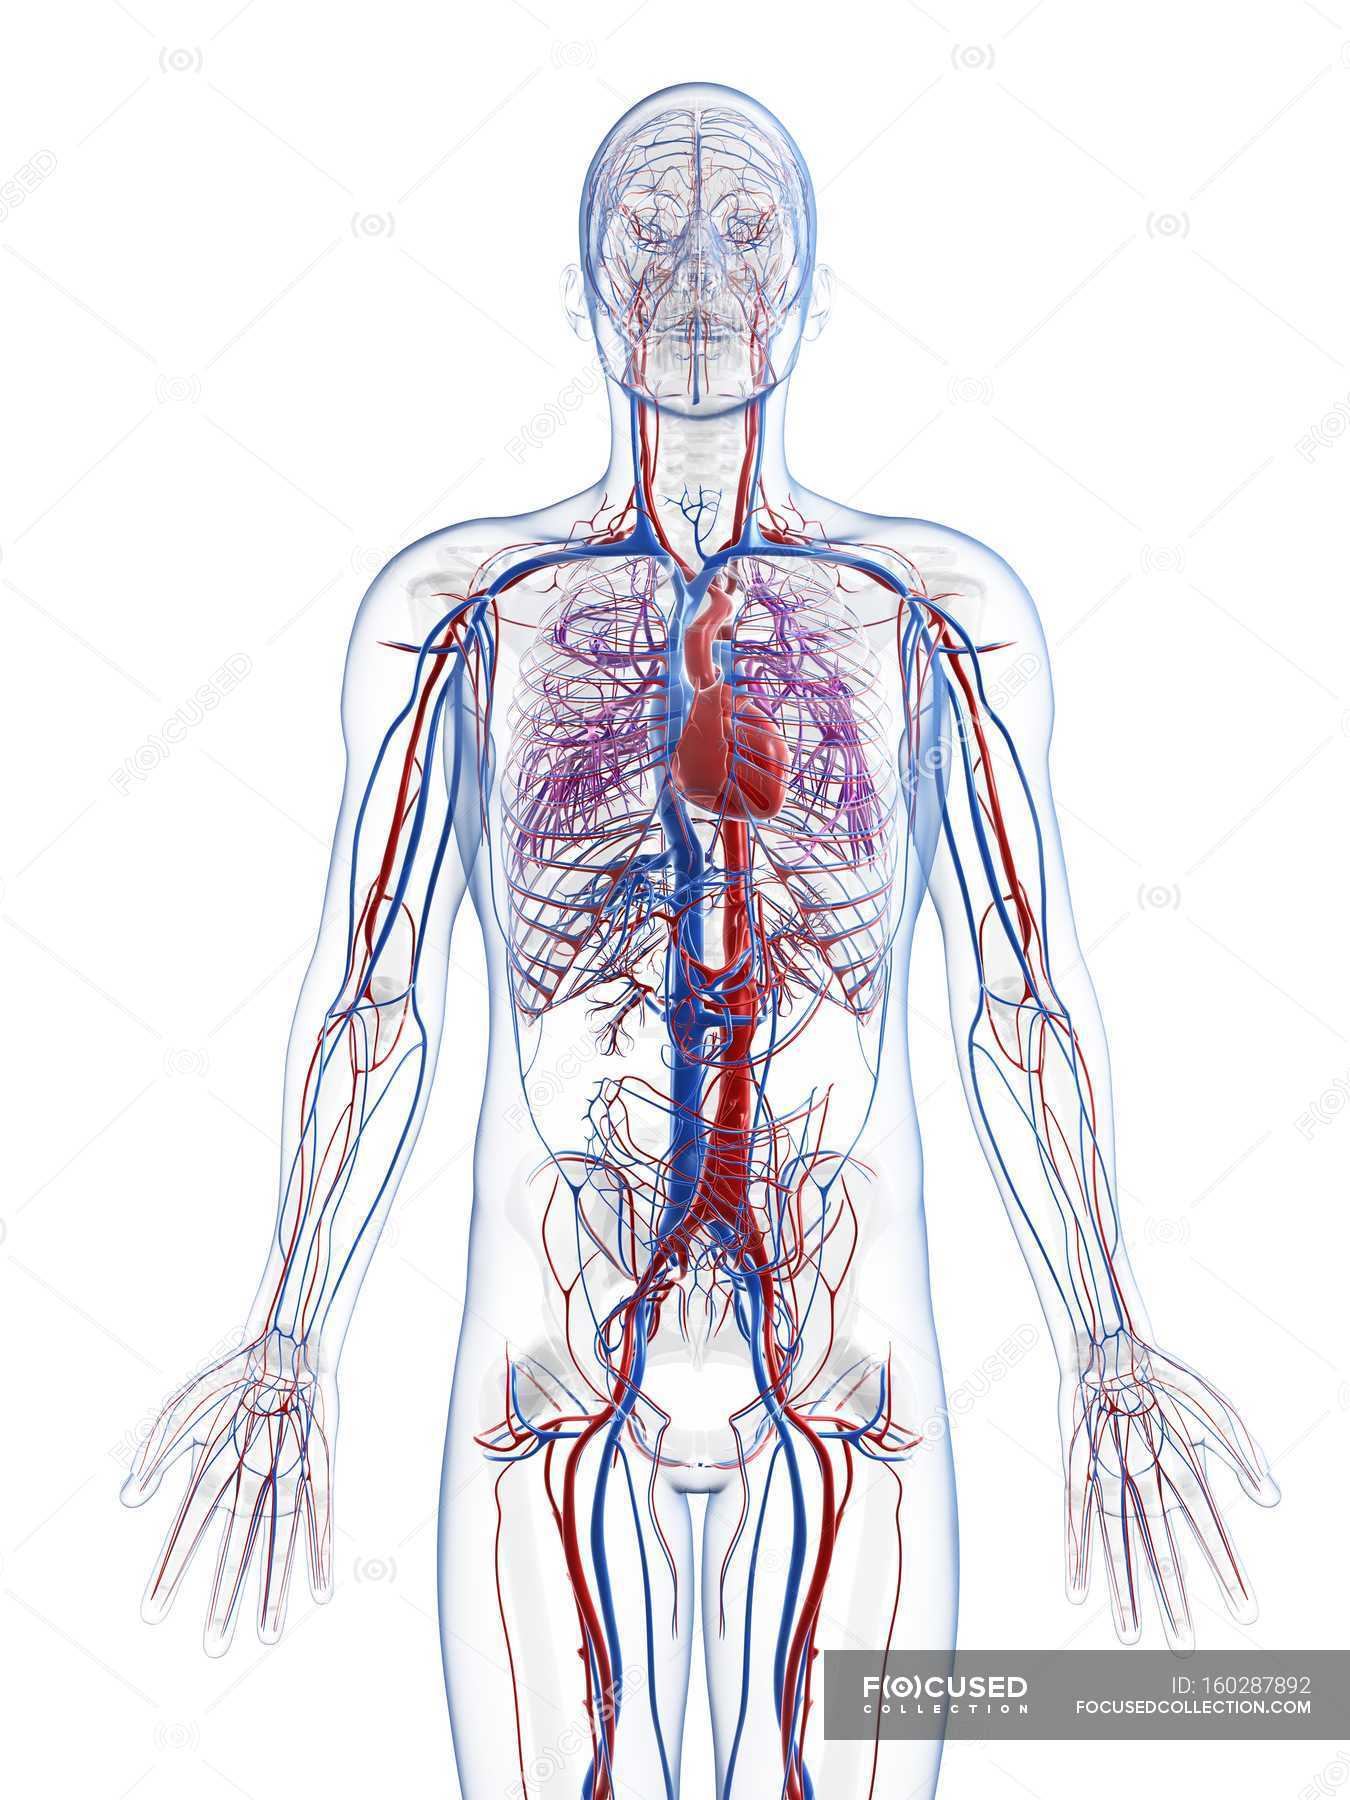 Human Vascular System White Background Front View Stock Photo